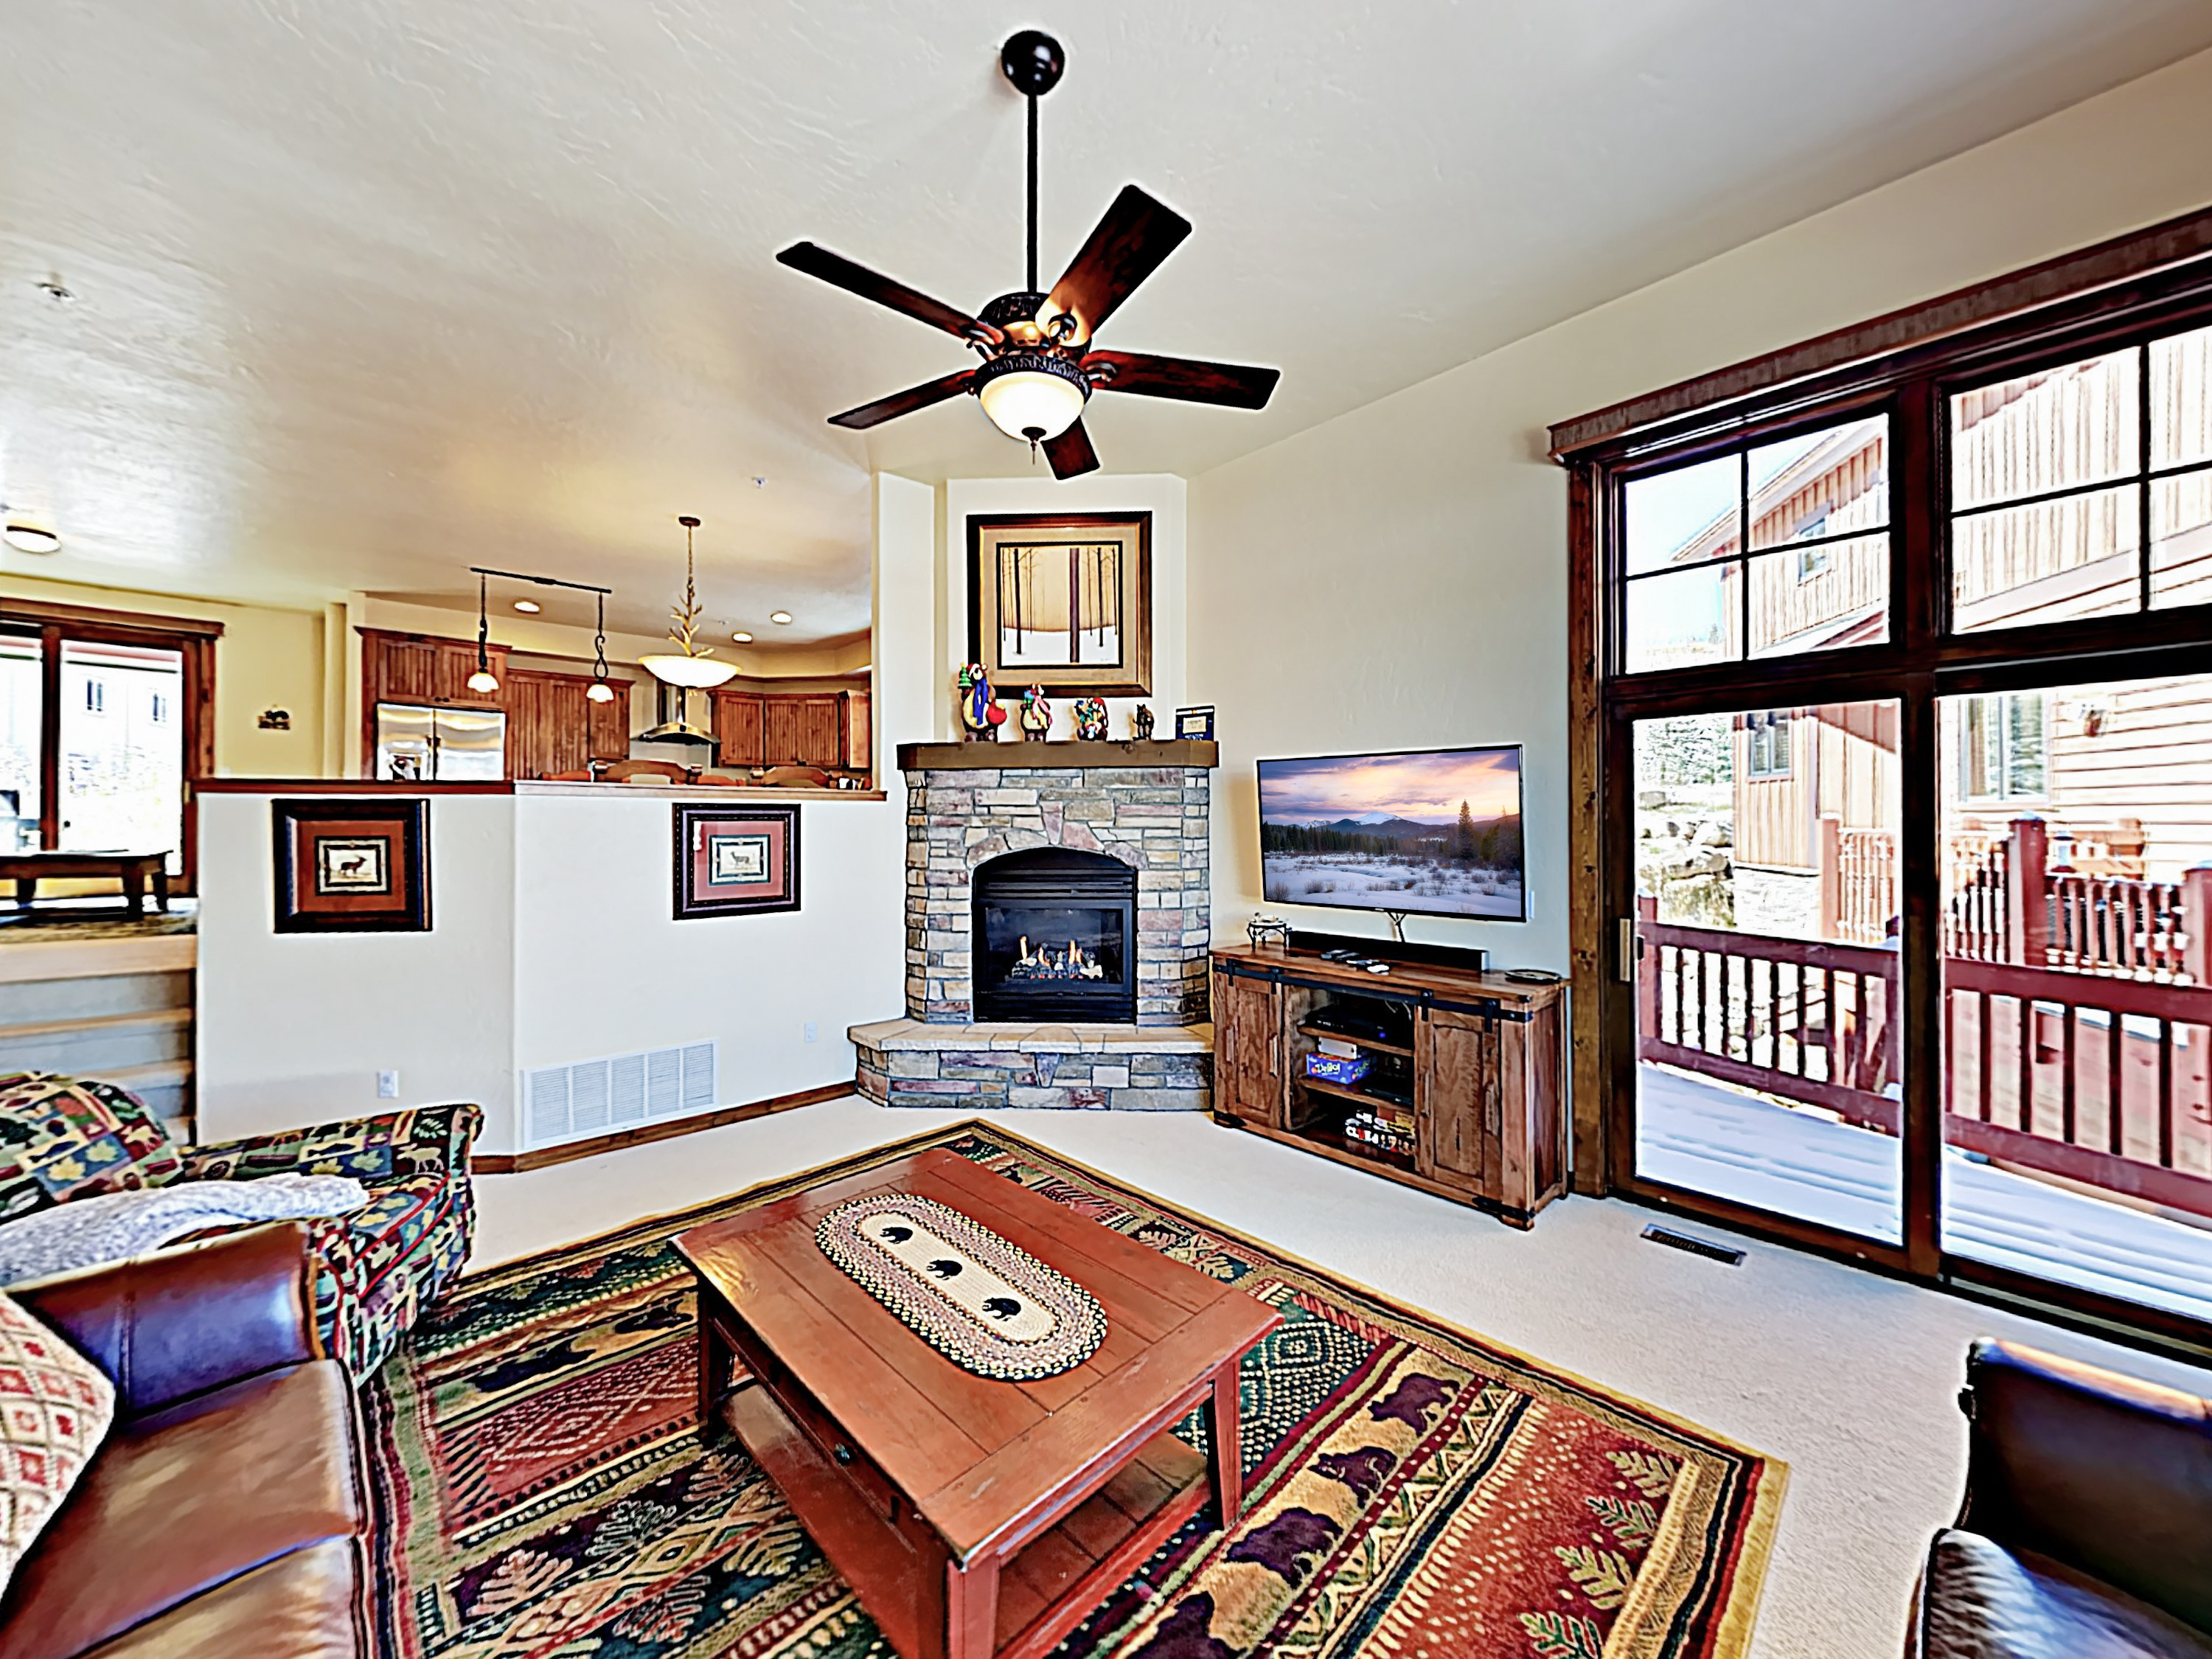 Fraser CO Vacation Rental Welcome! This townhouse